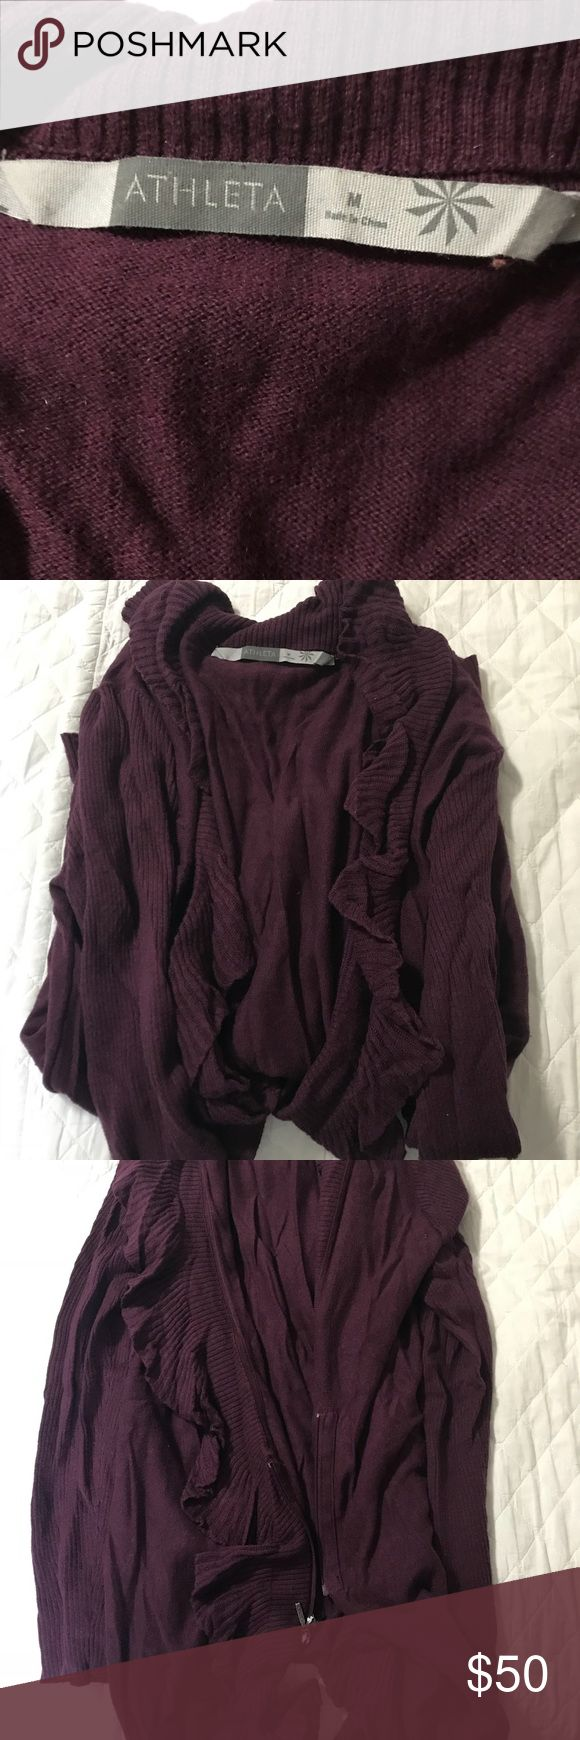 Athleta cardigan Rich vine colored cardigan from Athleta Model is about 5'1 and 130 LBS (if that helps) 🌸MAKE AN OFFER🌸 Athleta Sweaters Cardigans